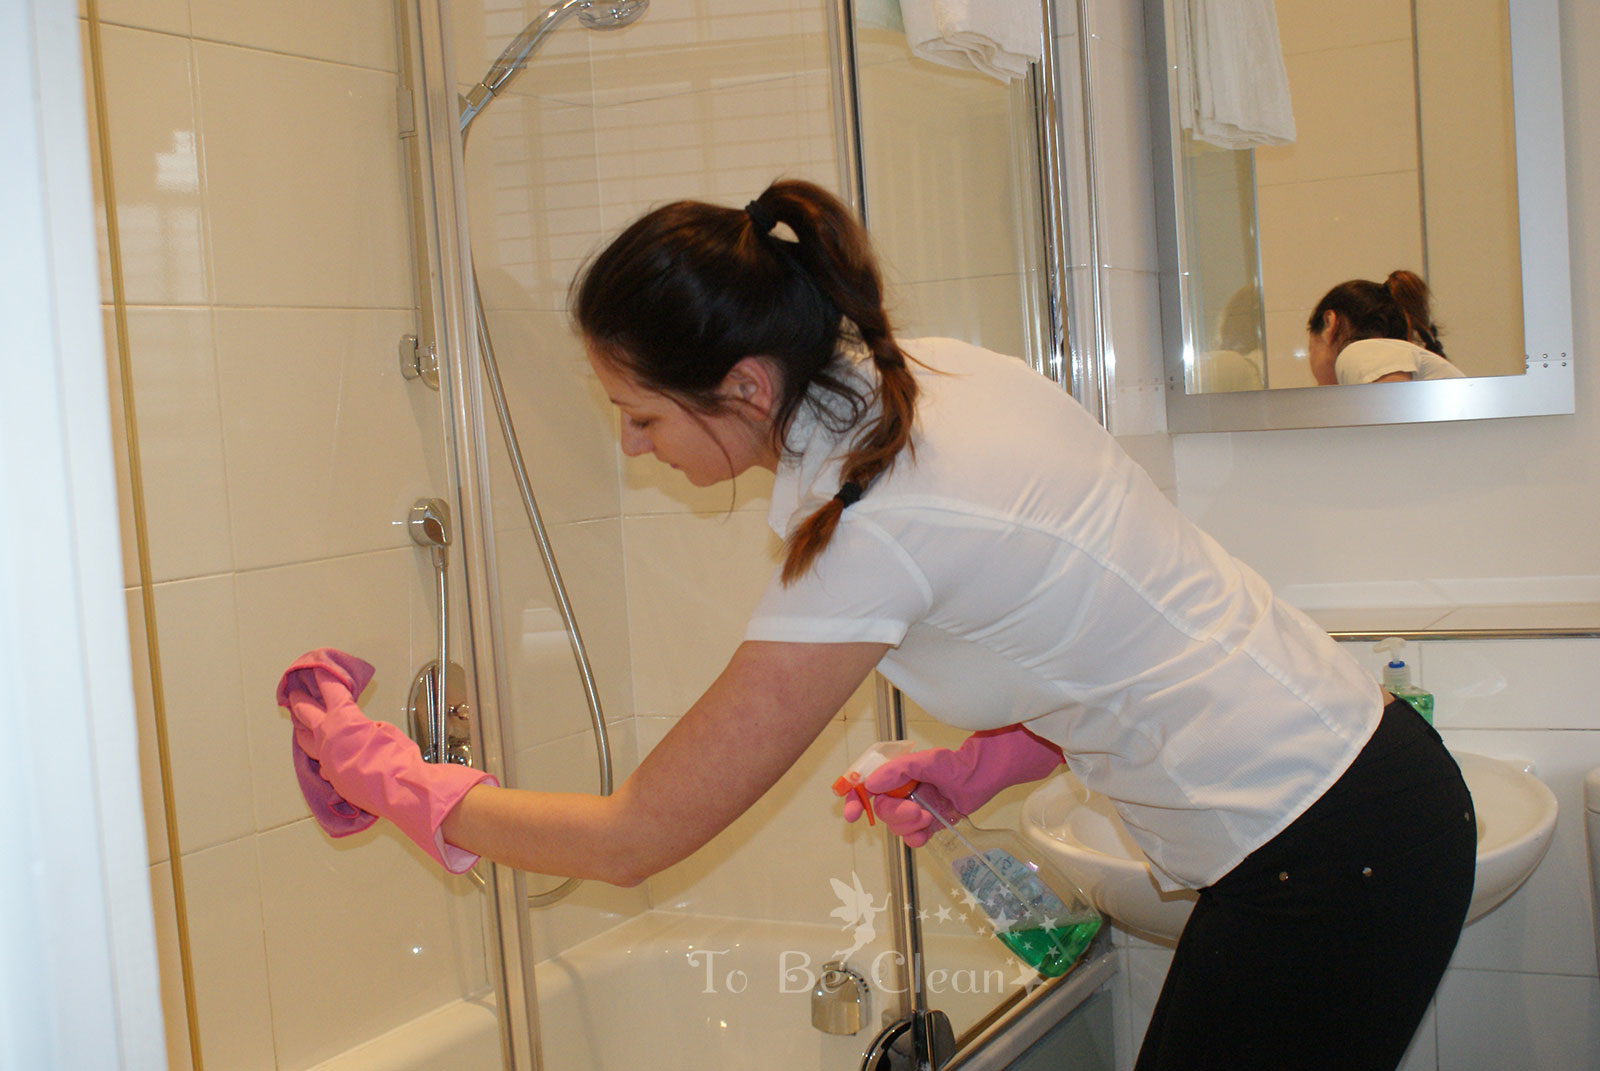 To Be Clean London, end of tenancy cleaning